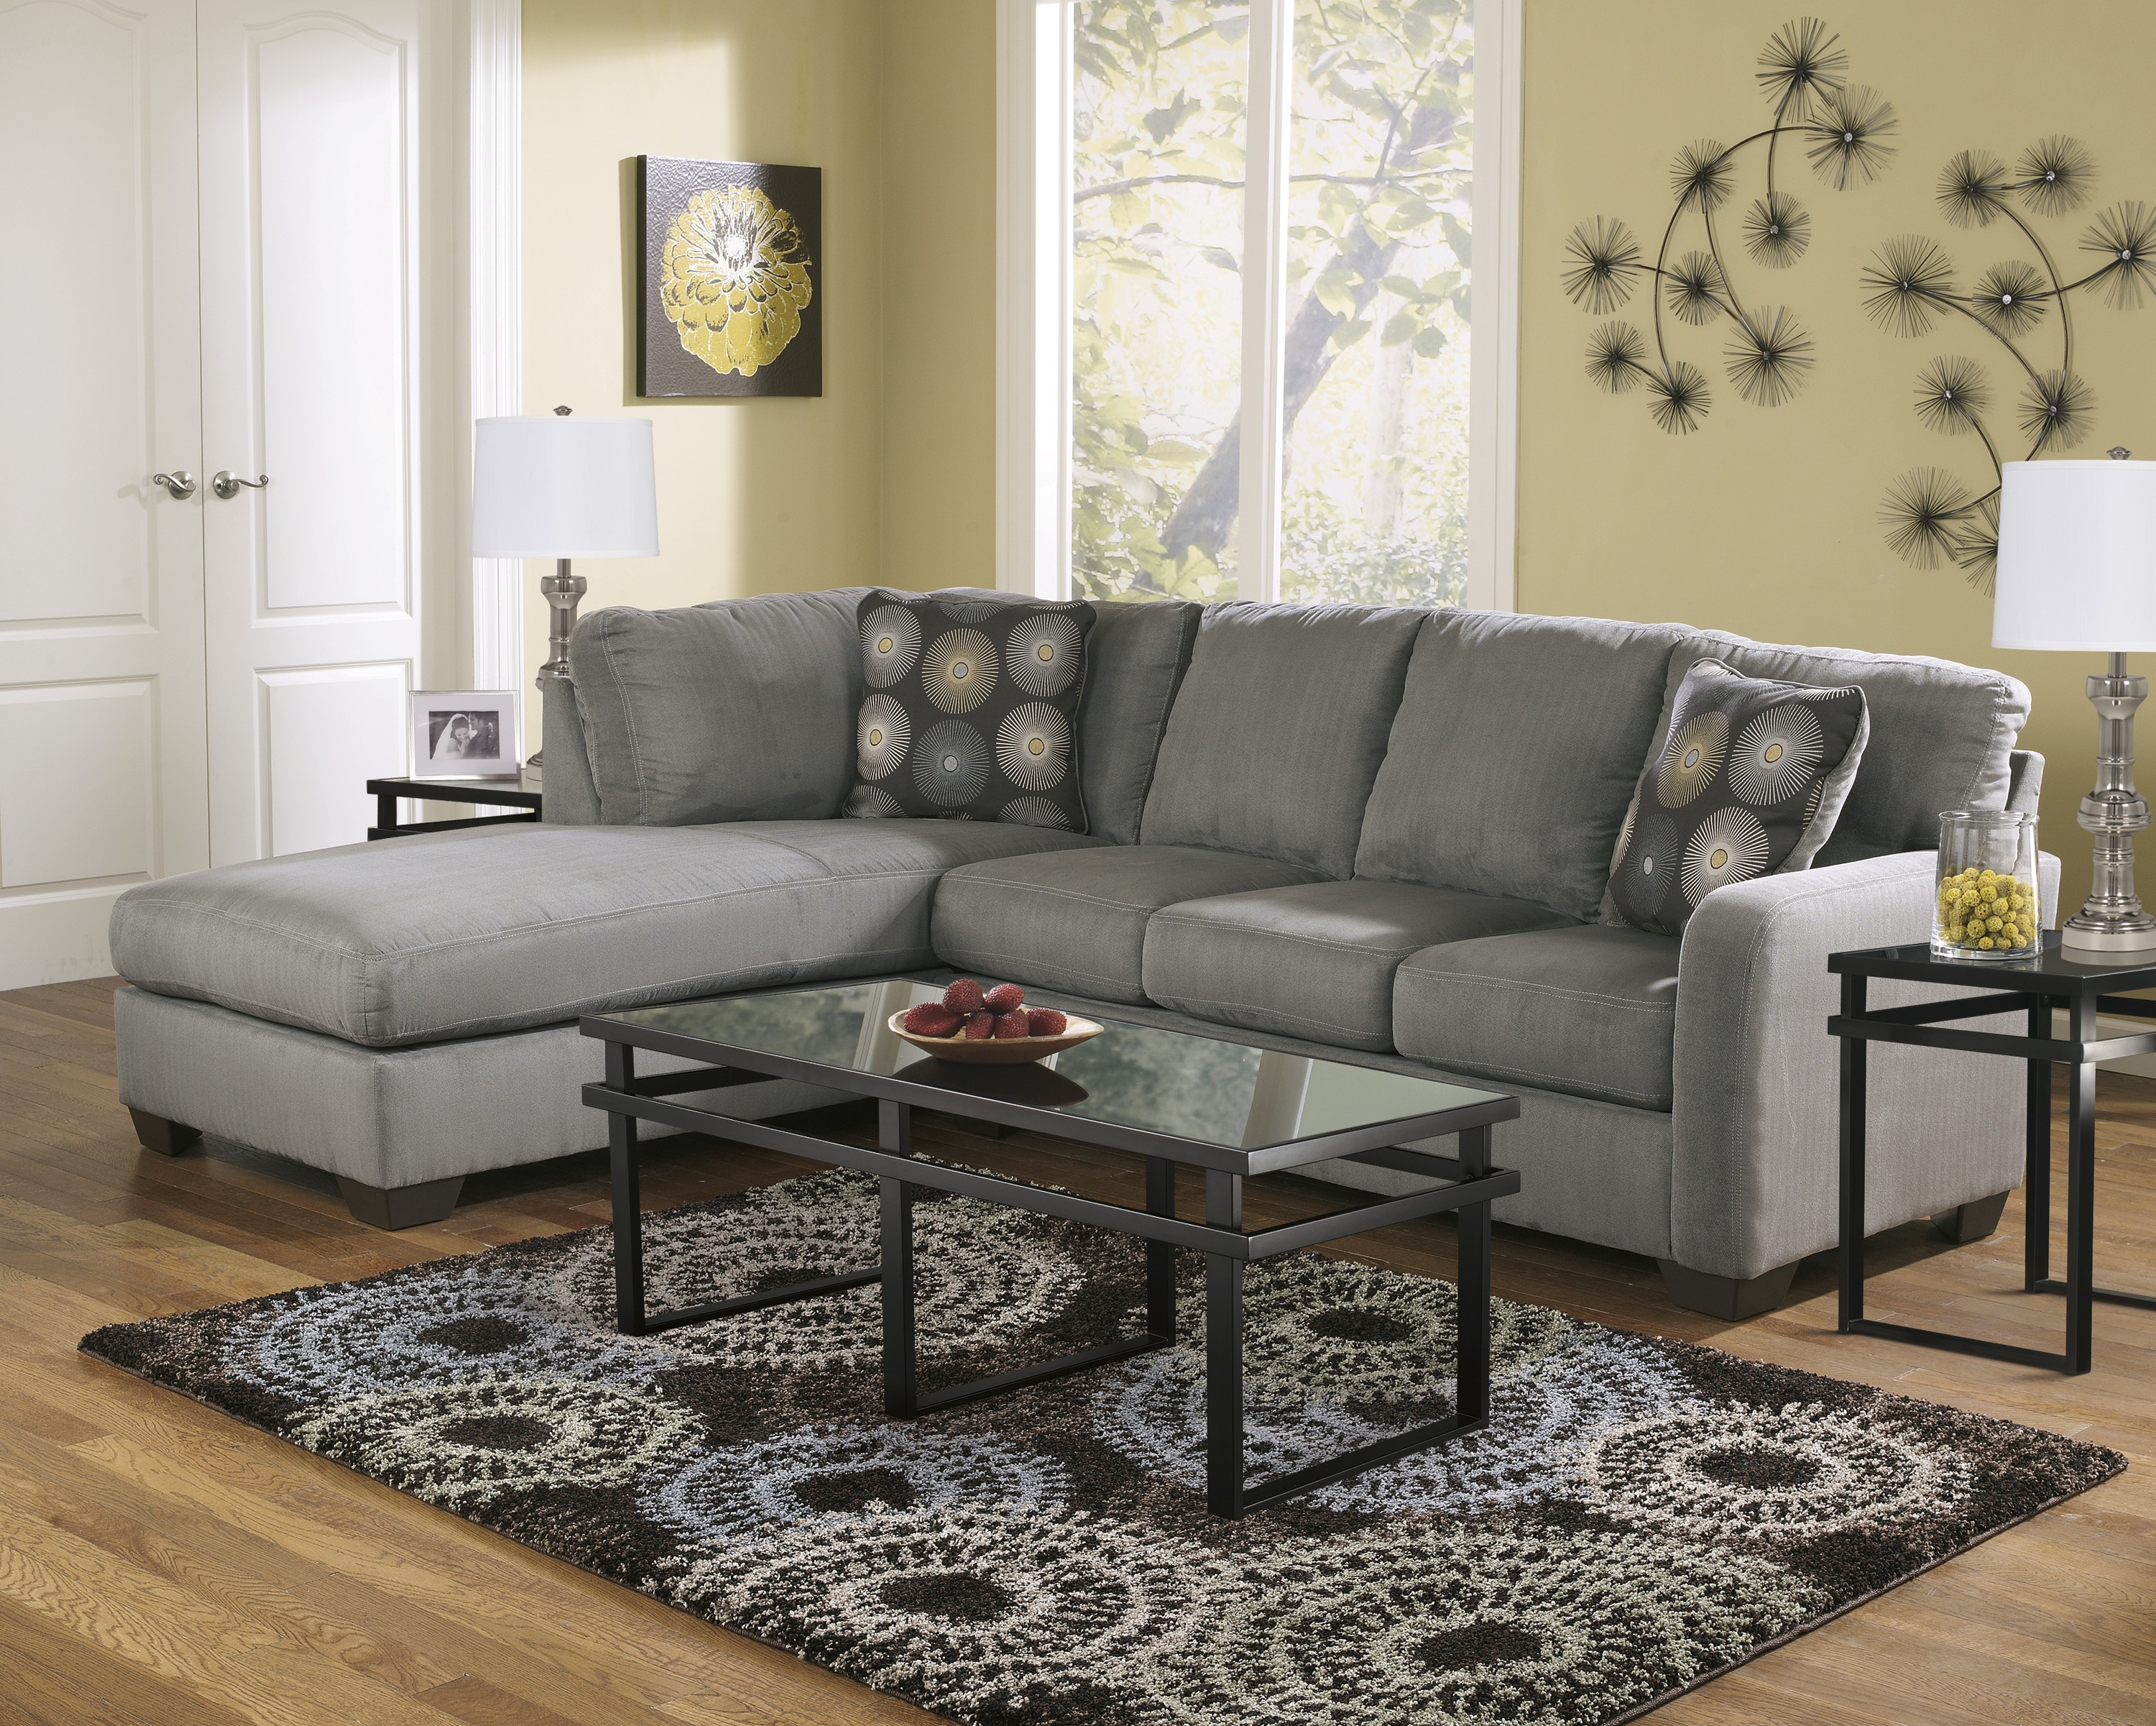 Stella Lounge Suite With Chaise